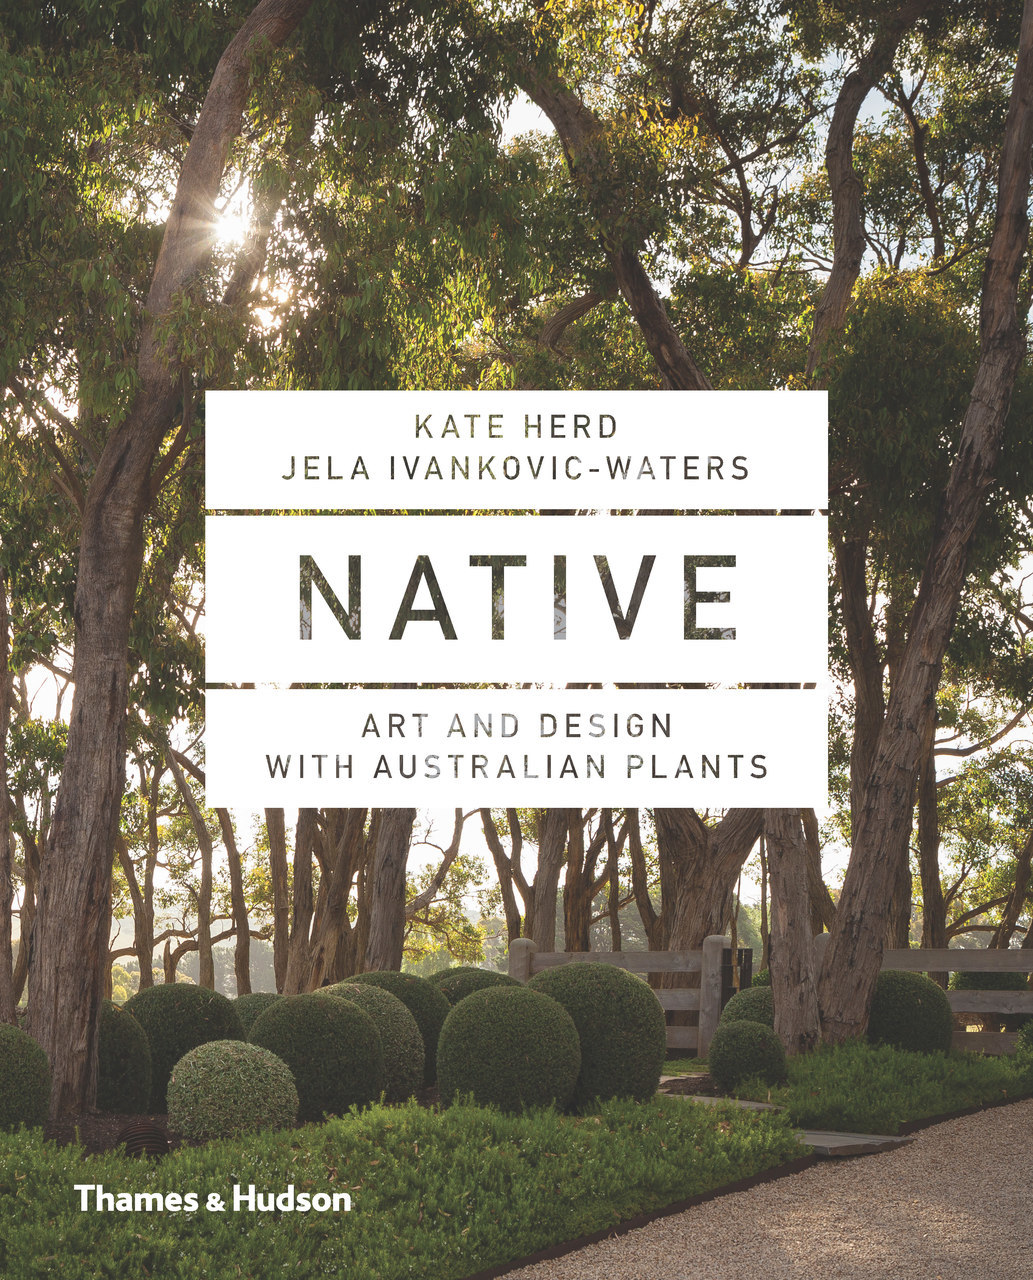 NativeArt and design with Australian Plants